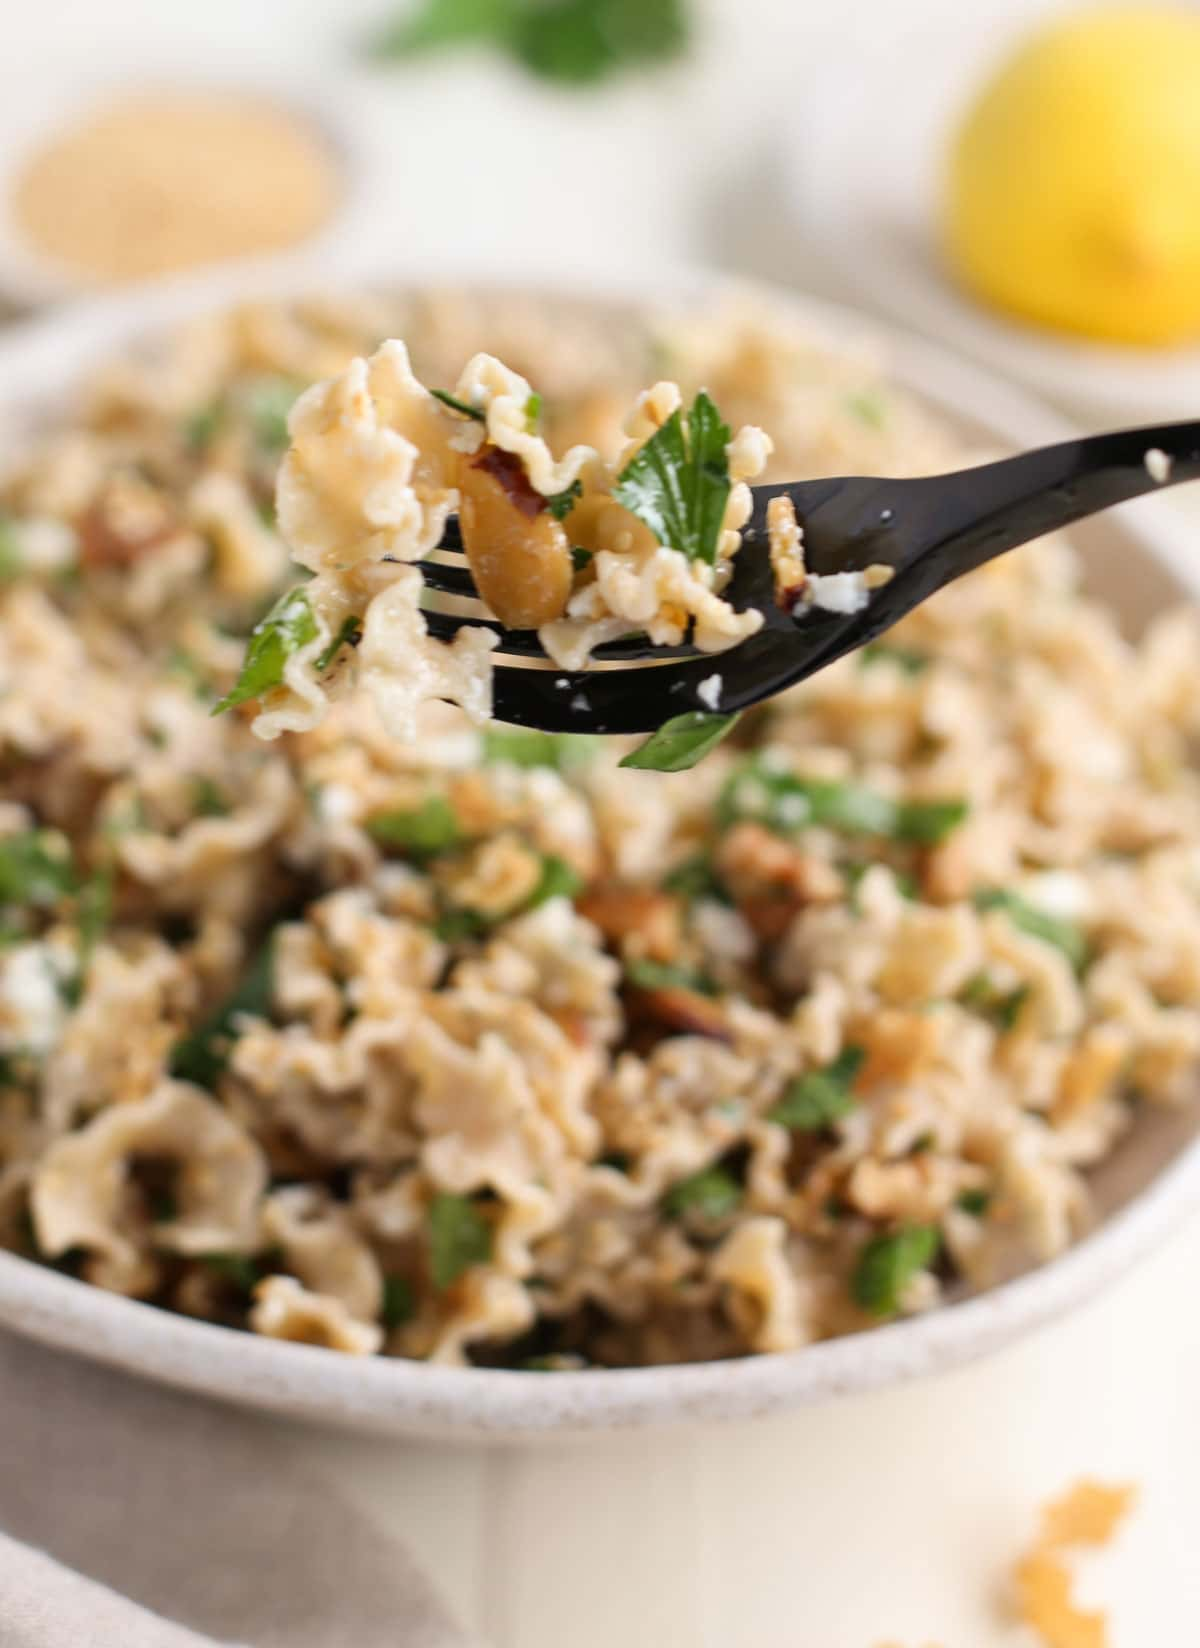 One forkful of Good Day Pasta with Toasted Nuts and Feta